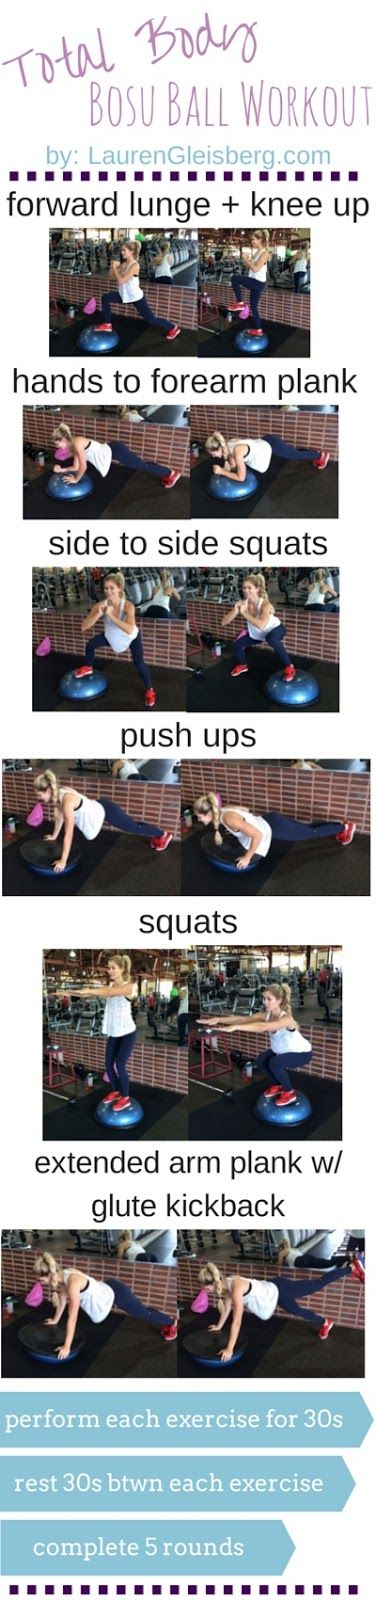 Total Body Bosu Ball Workout | click for full workout guides by